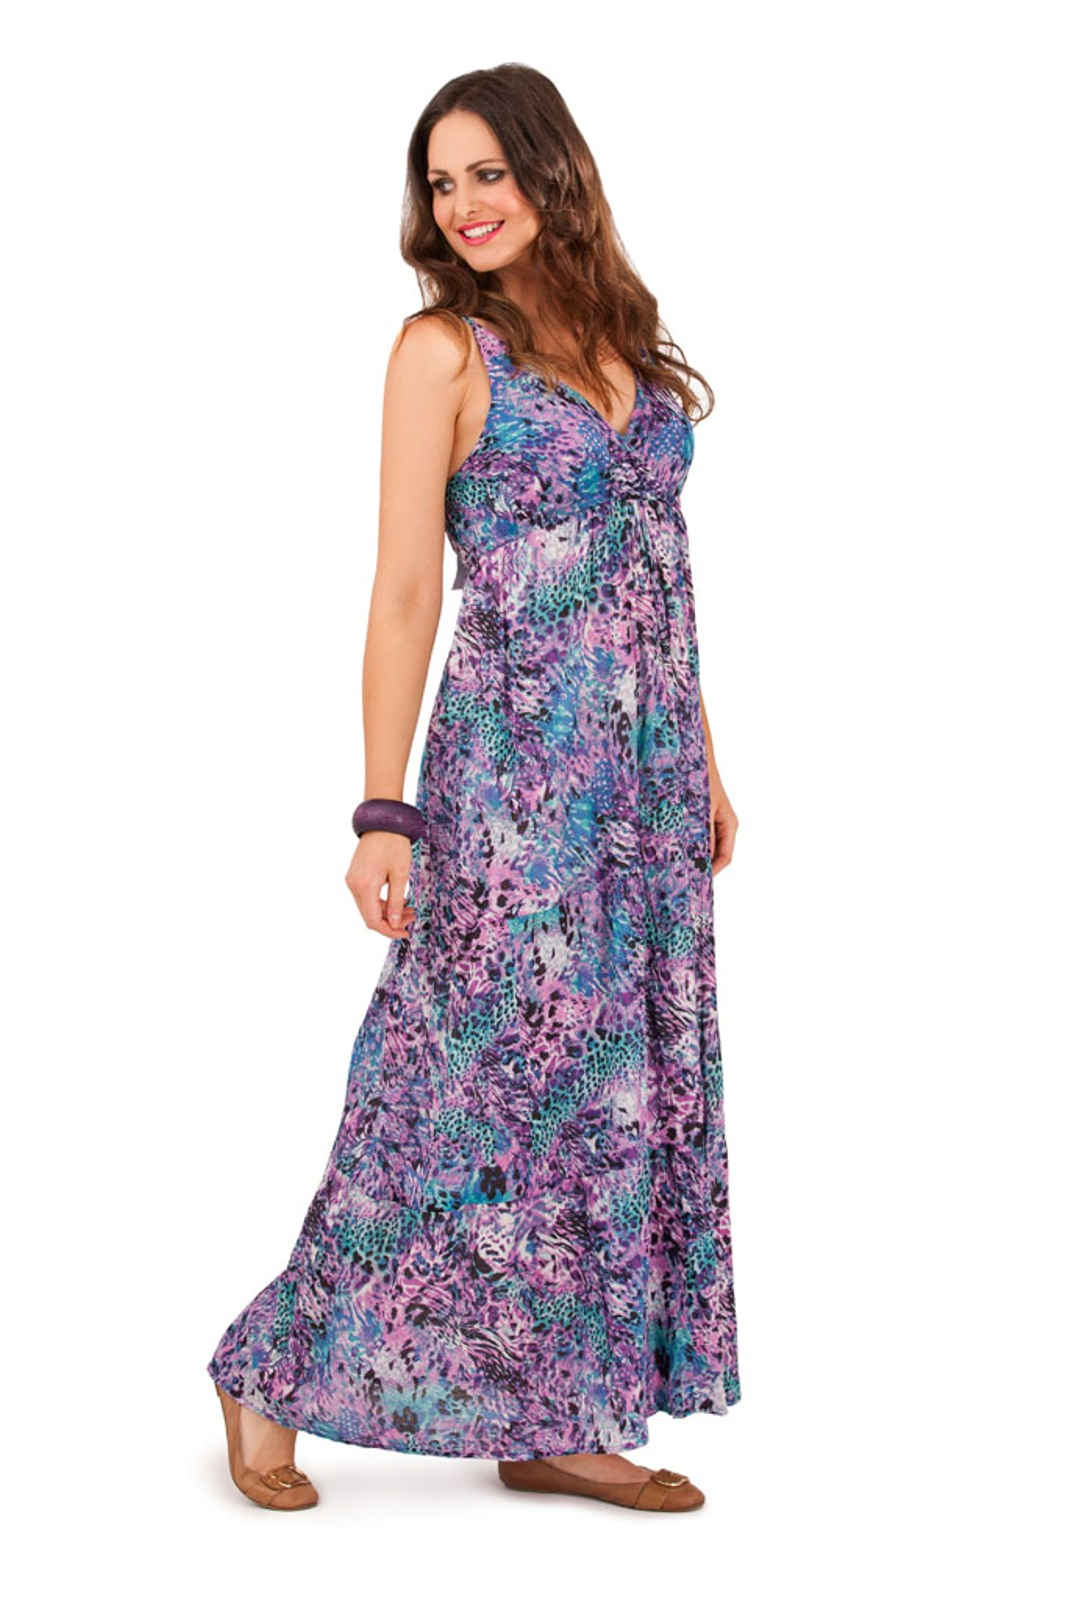 Womens-100-Cotton-Flower-V-Neck-Maxi-Full-Length-Summer-Dress-Ladies-Size-8-16